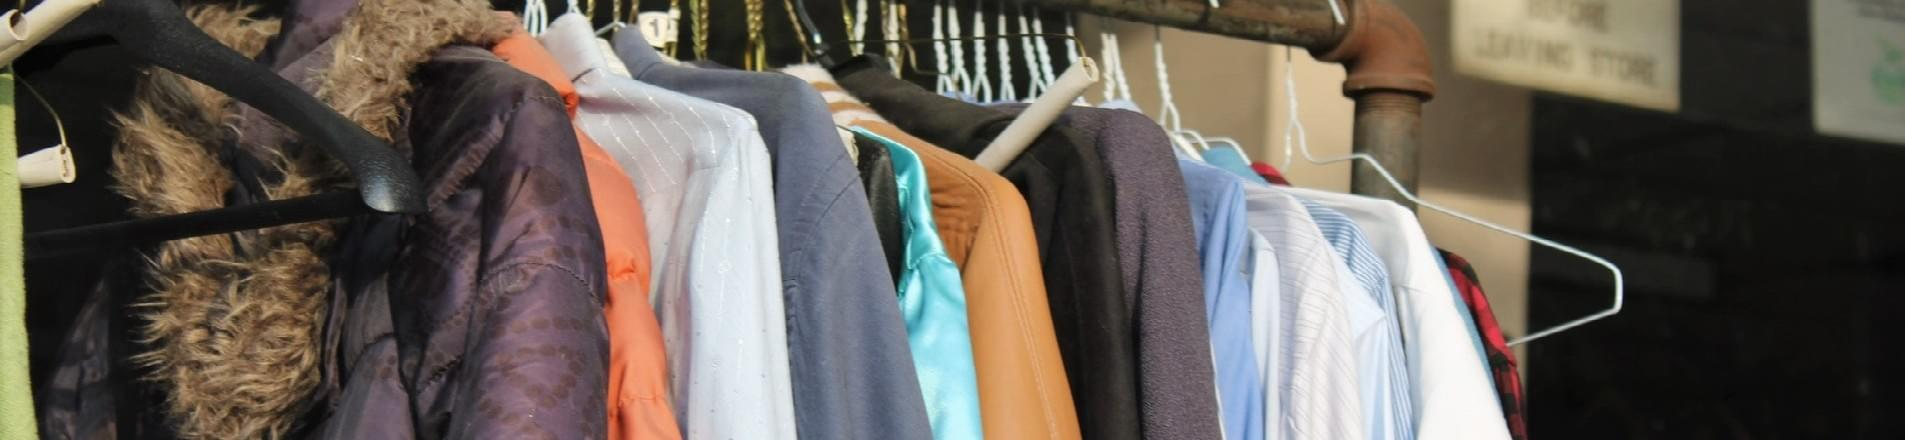 Free dry cleaning services for unemployed